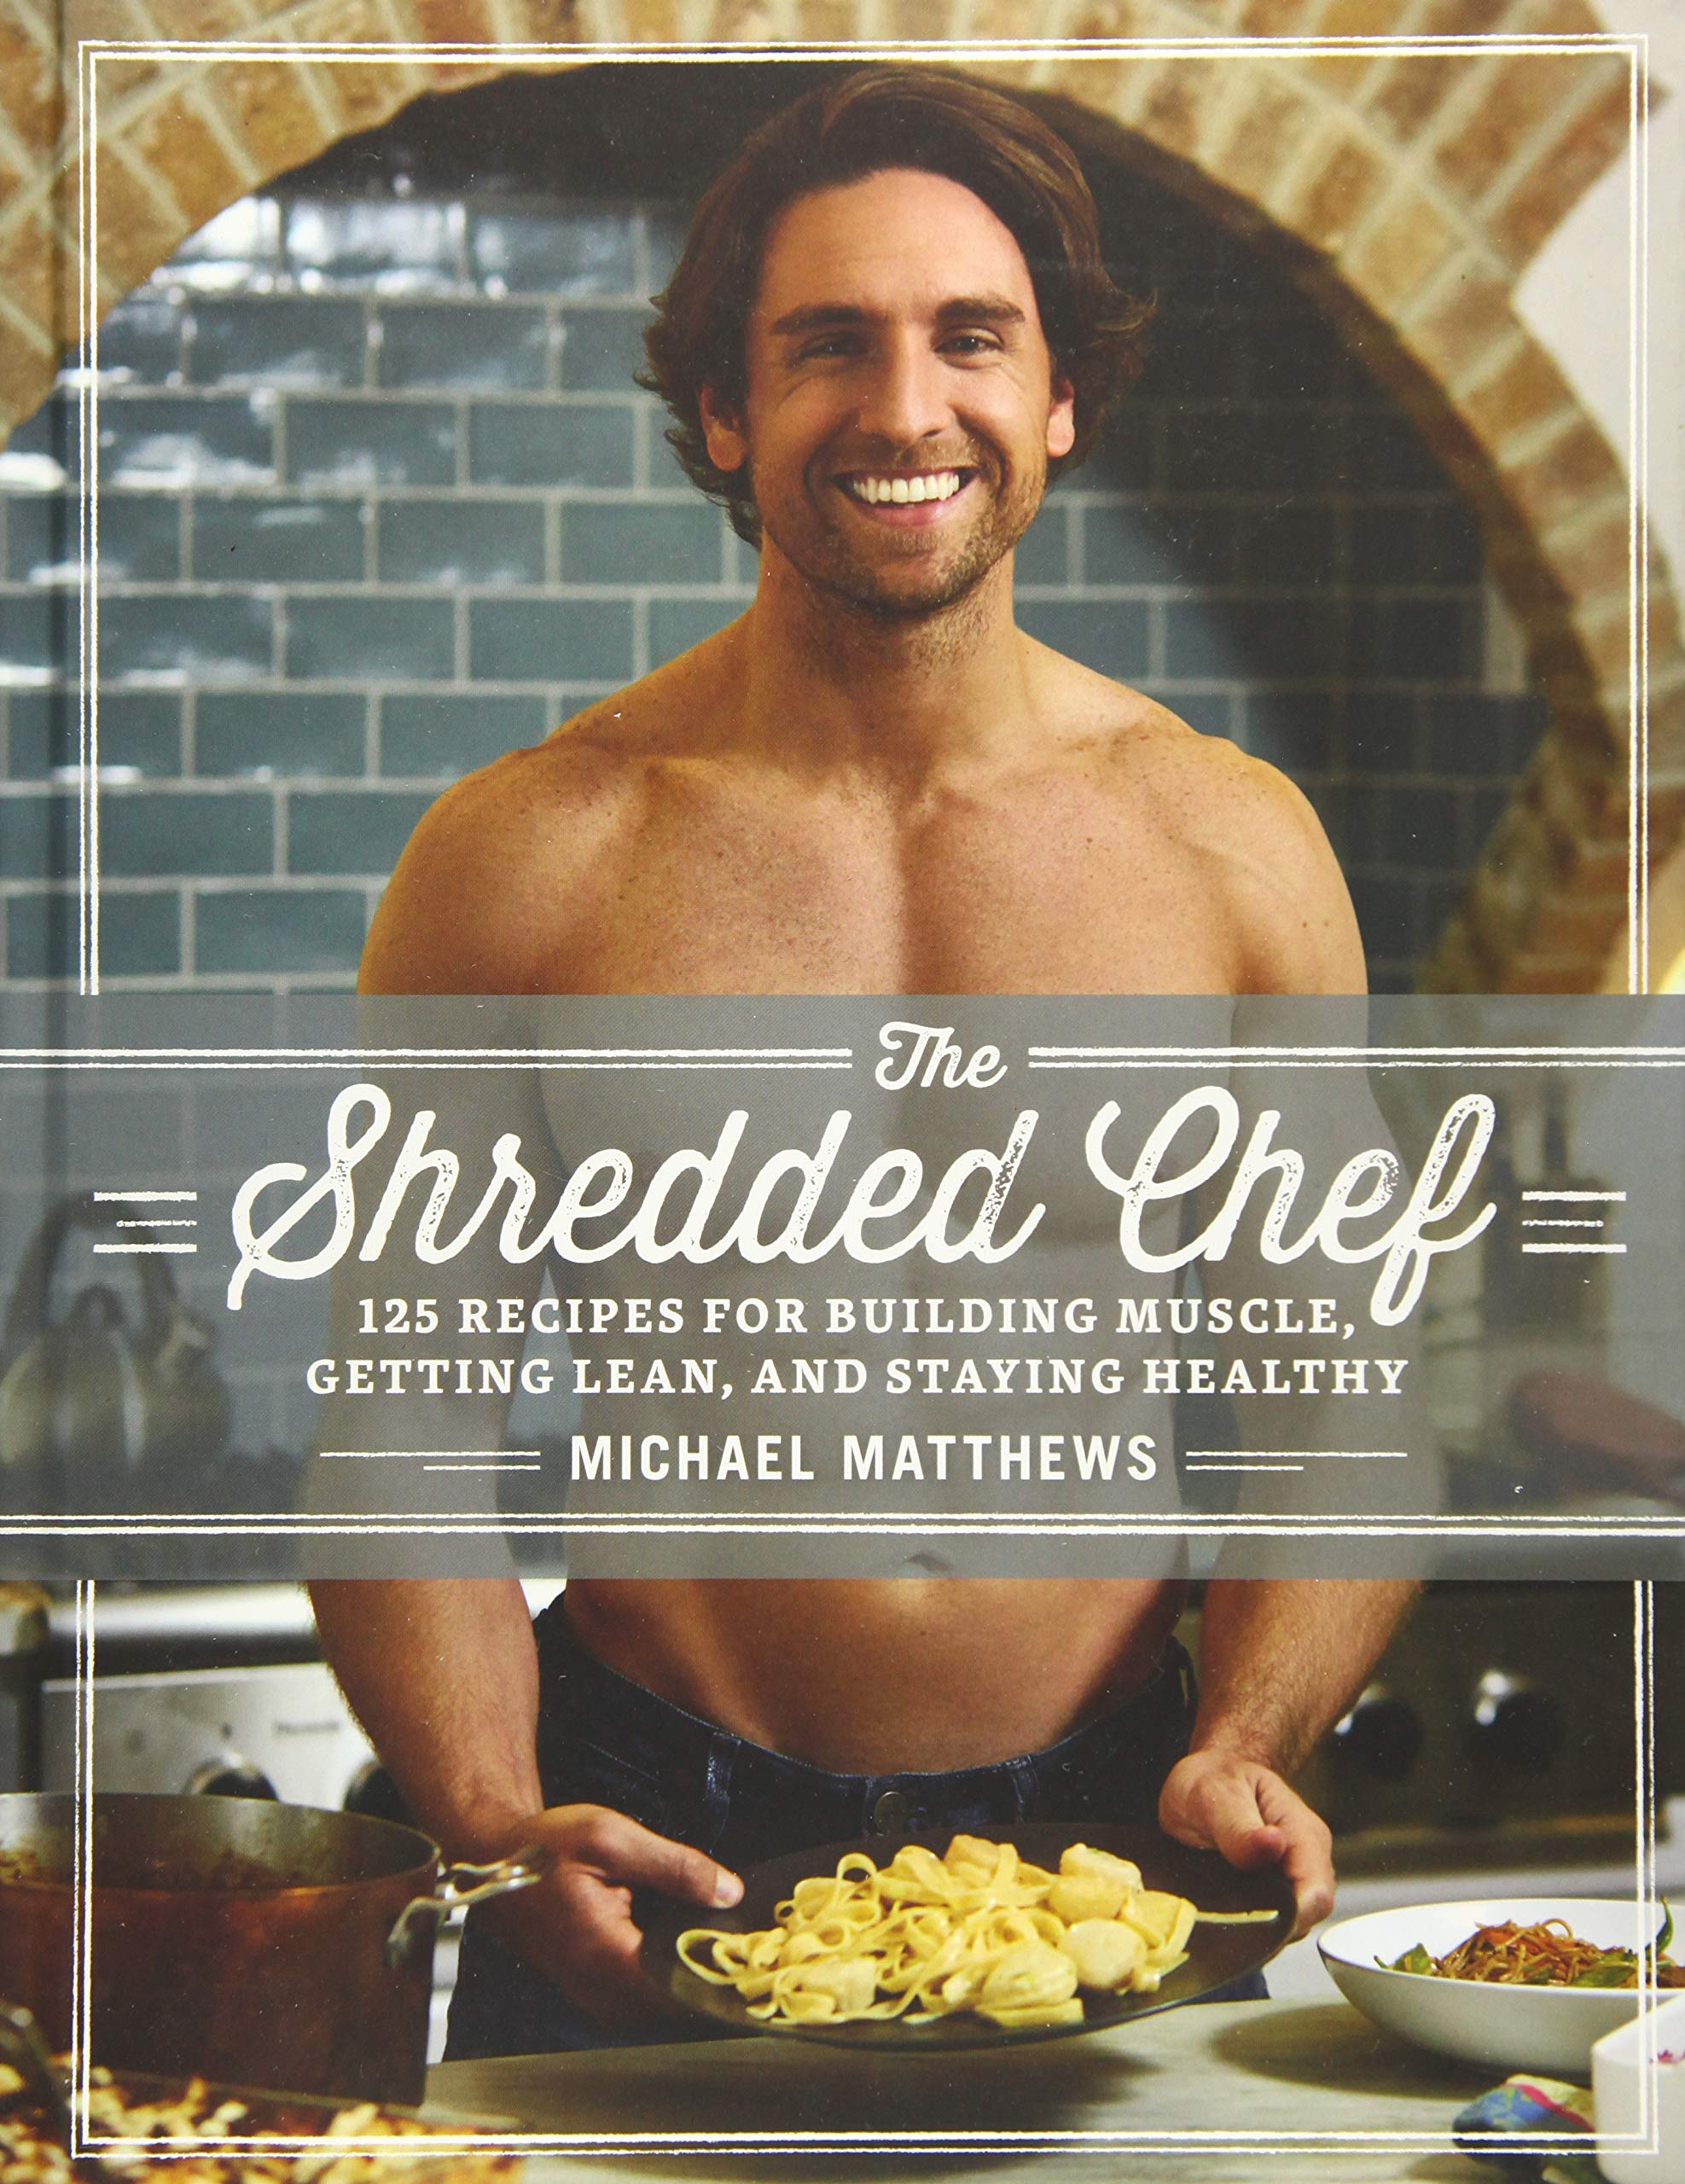 The Shredded Chef: 125 Recipes for Building Muscle, Getting Lean, and Staying Healthy (Third Edition) by Waterbury Publications Inc.